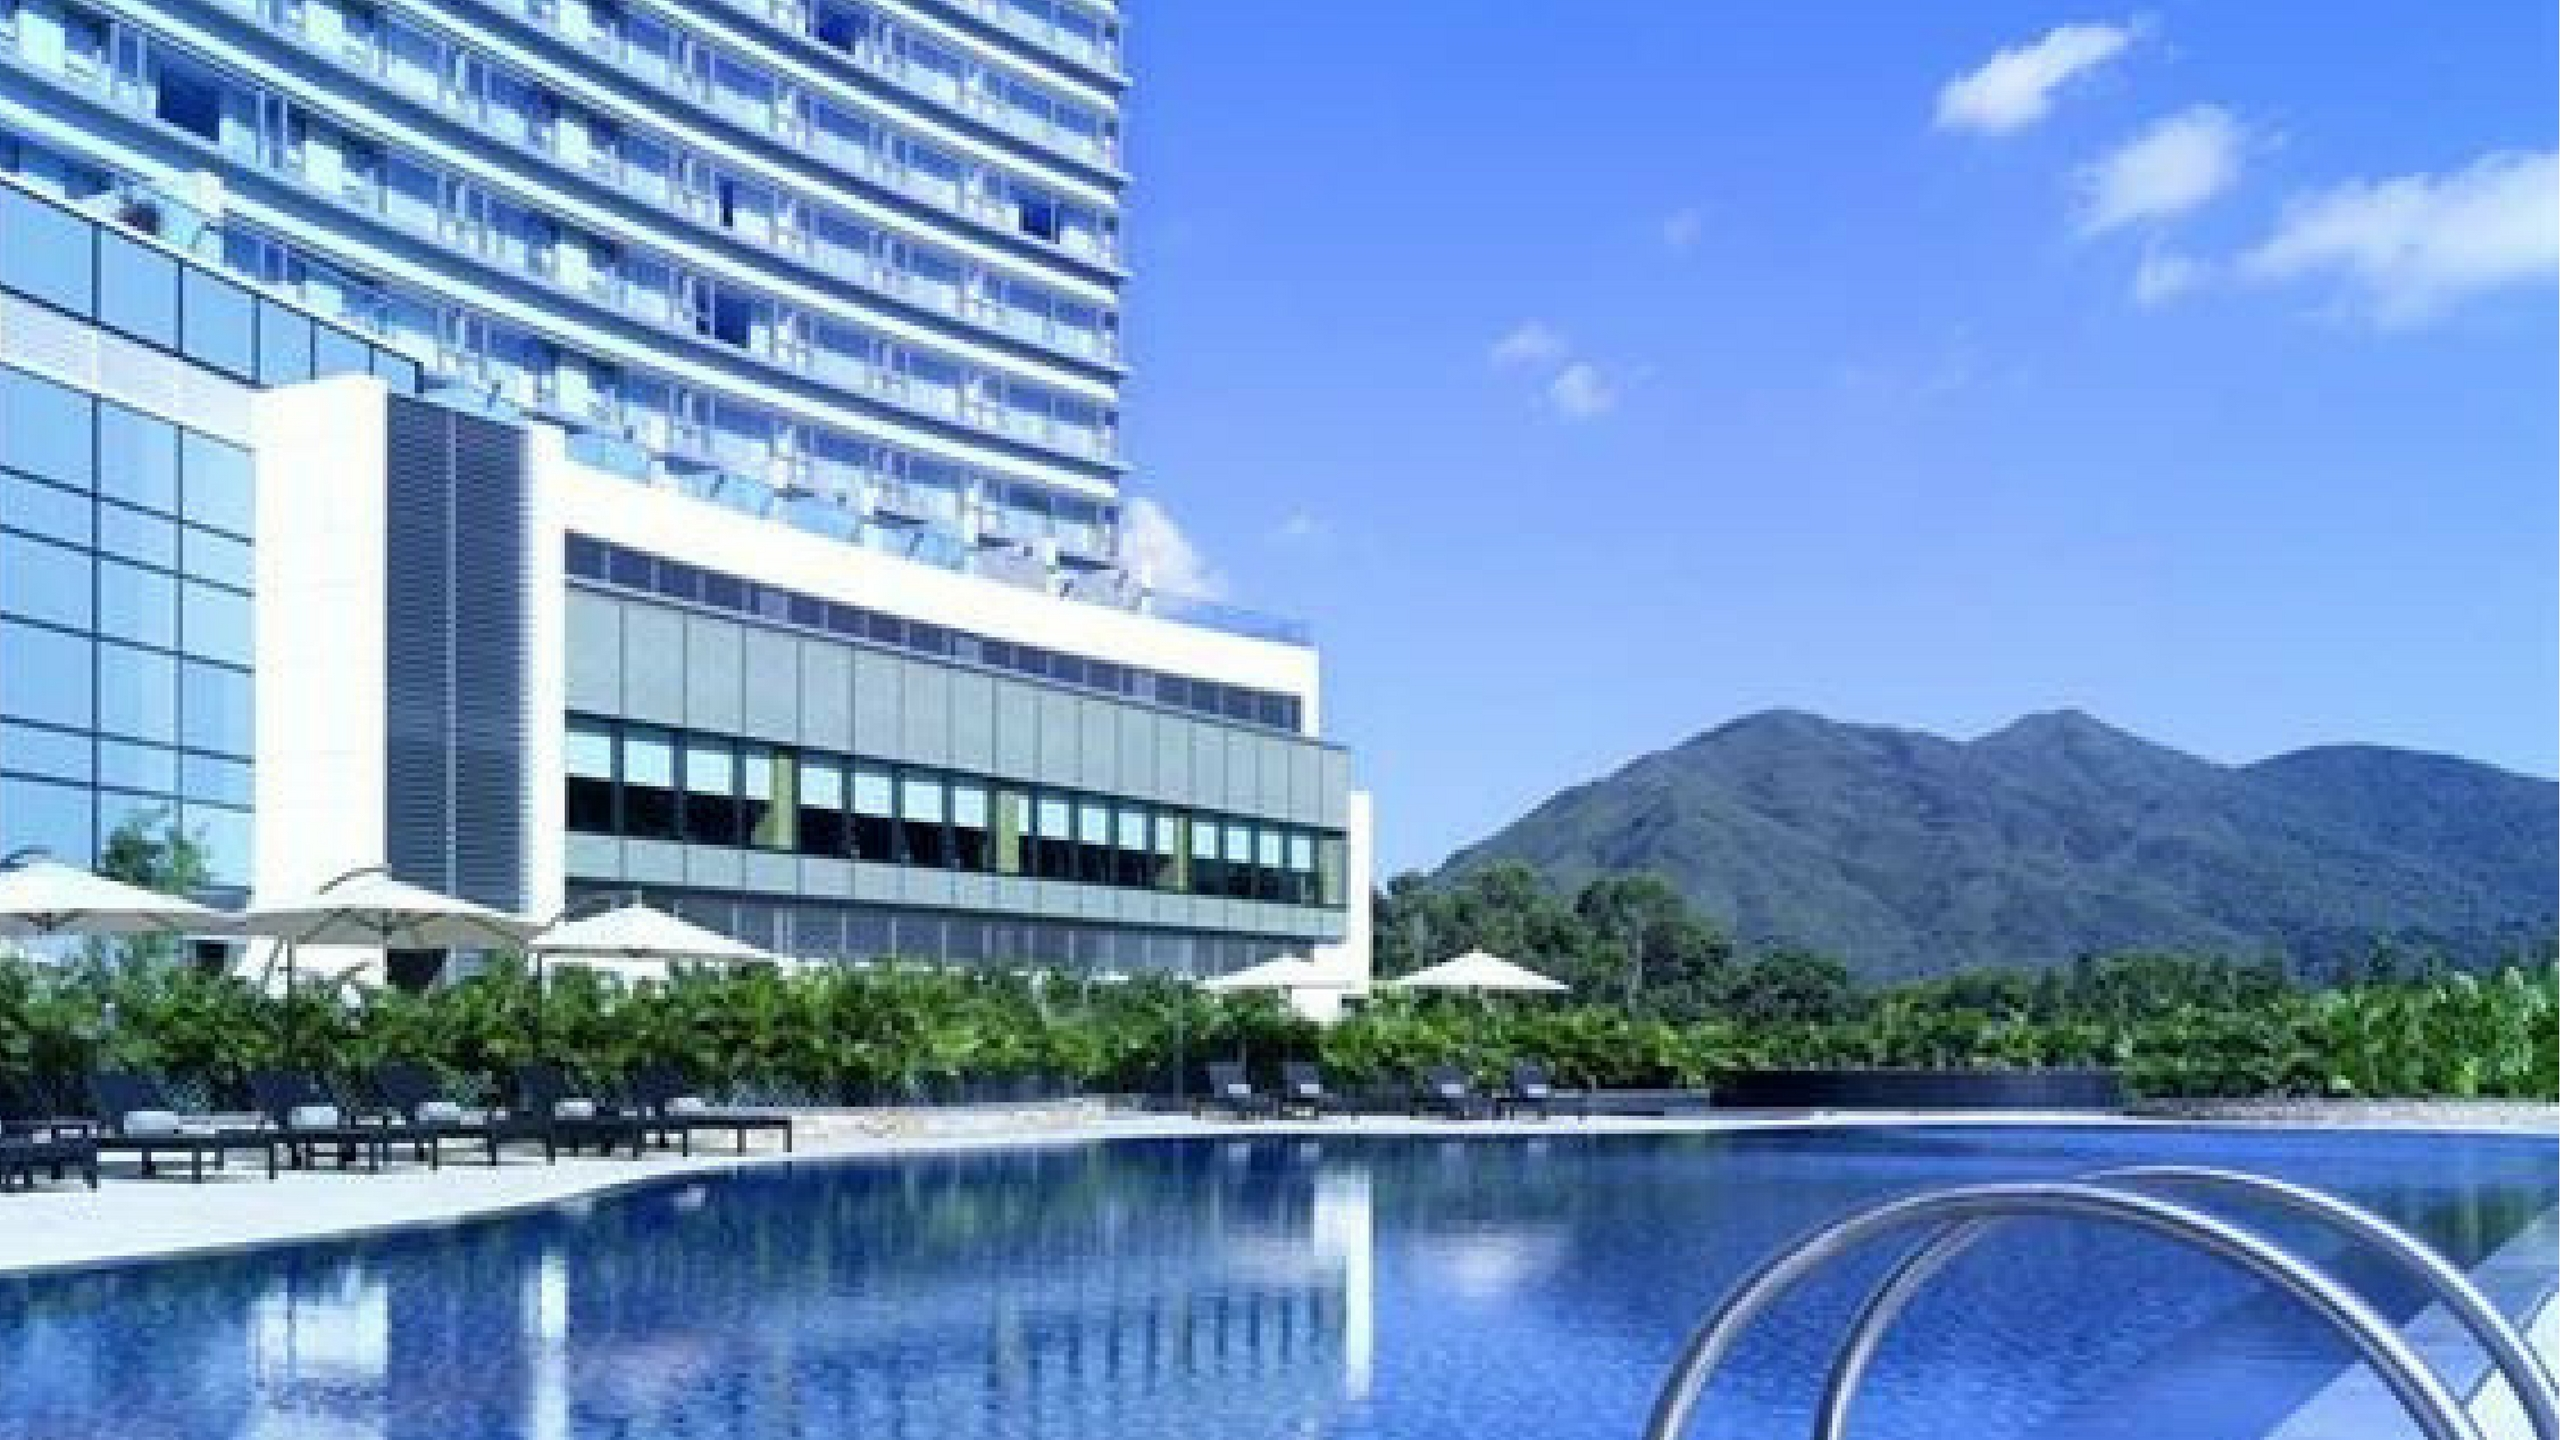 Hyatt Regency Hong Kong, Sha Tin Family Friendly Hotel view of mountain and pool